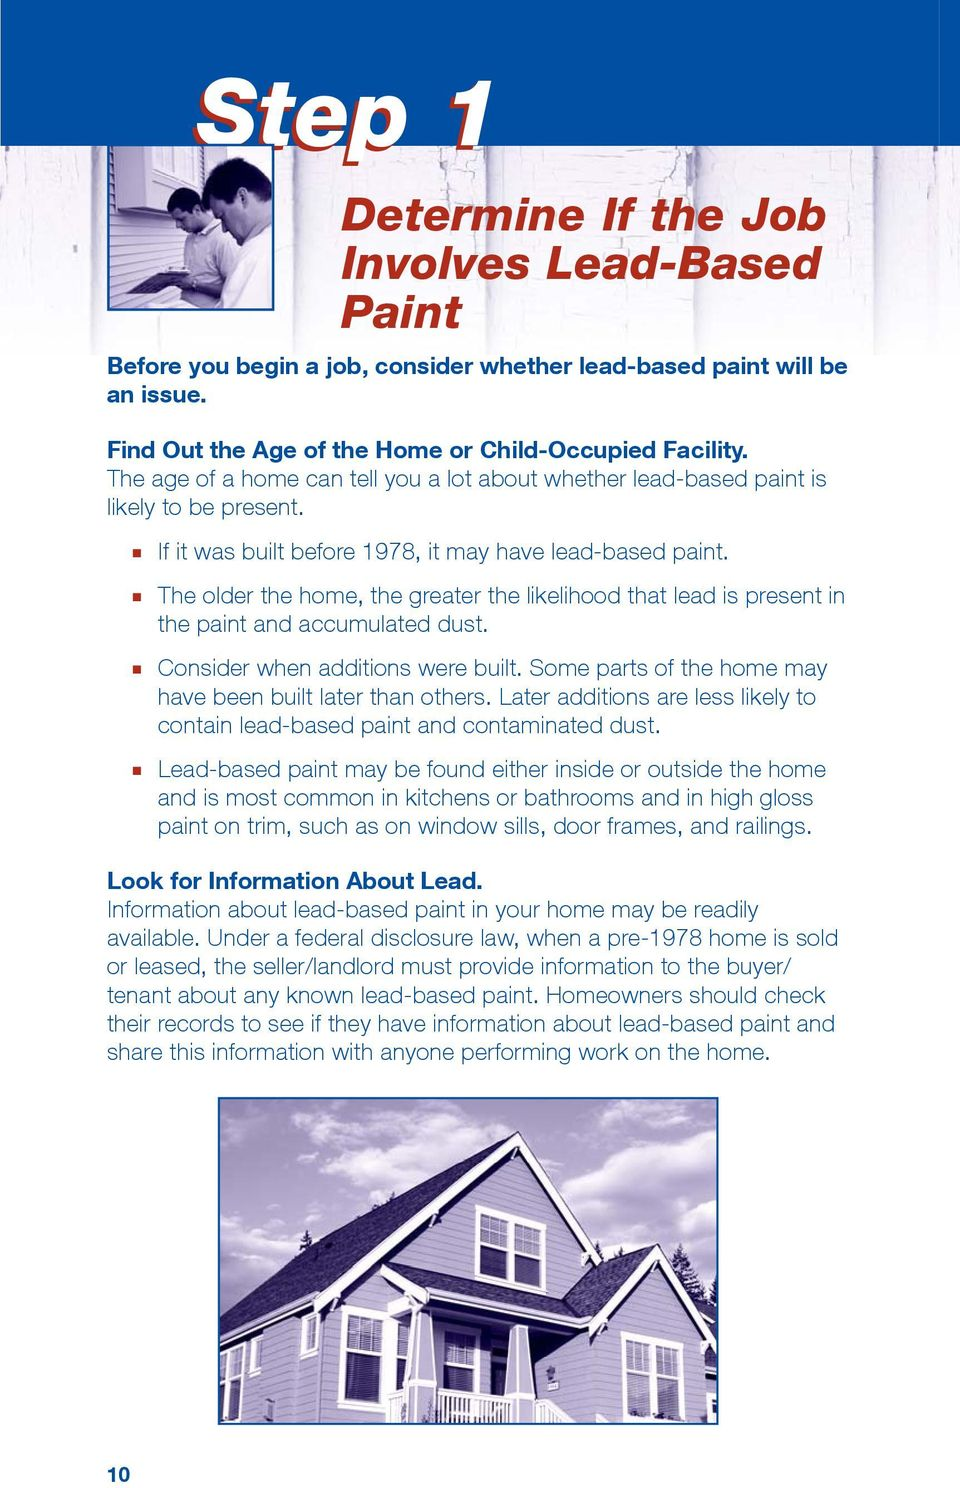 The older the home, the greater the likelihood that lead is present in the paint and accumulated dust. Consider when additions were built. Some parts of the home may have been built later than others.